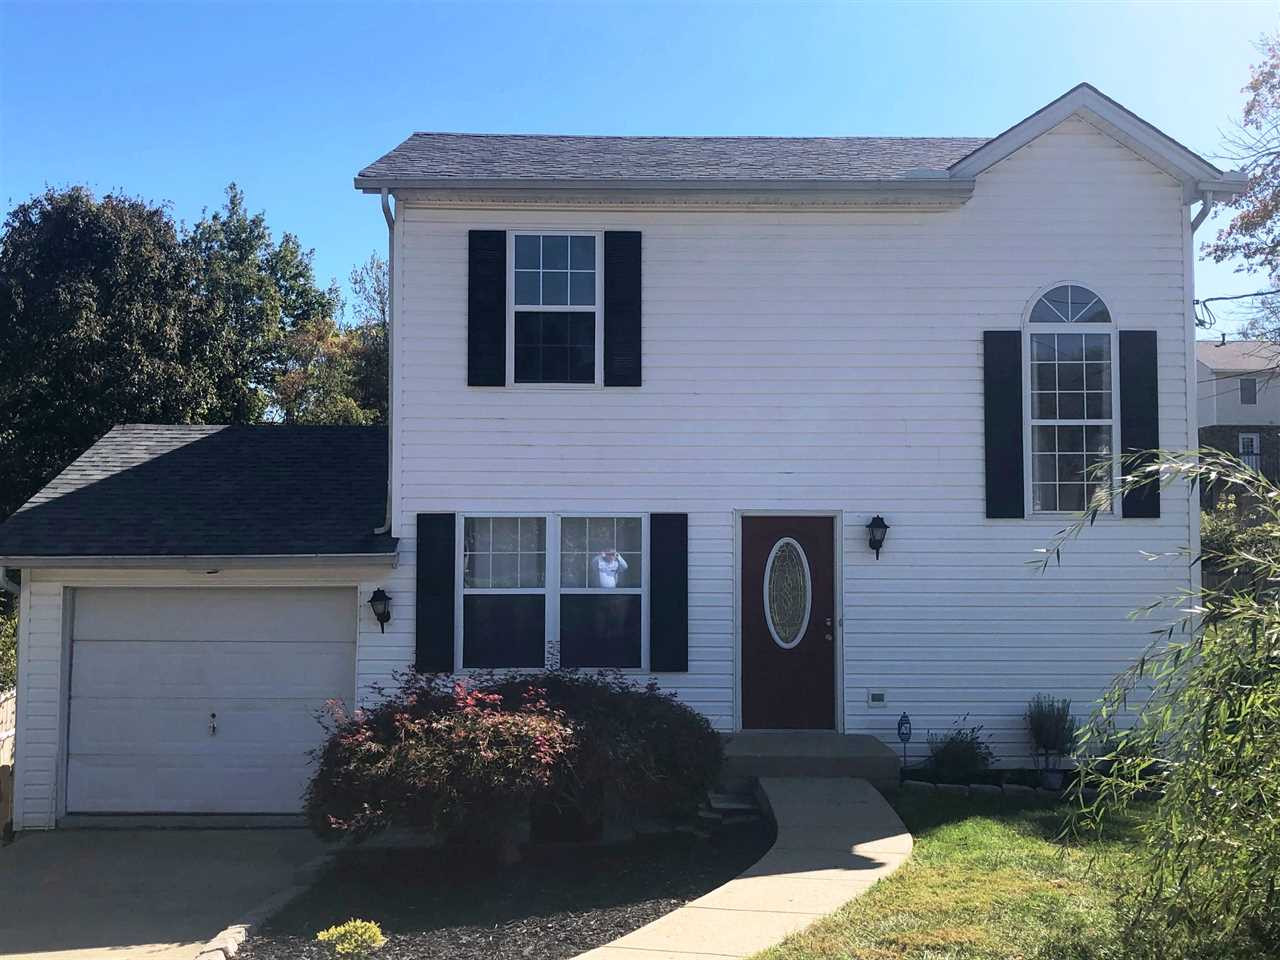 Photo 1 for 215 Palace Ave Elsmere, KY 41018